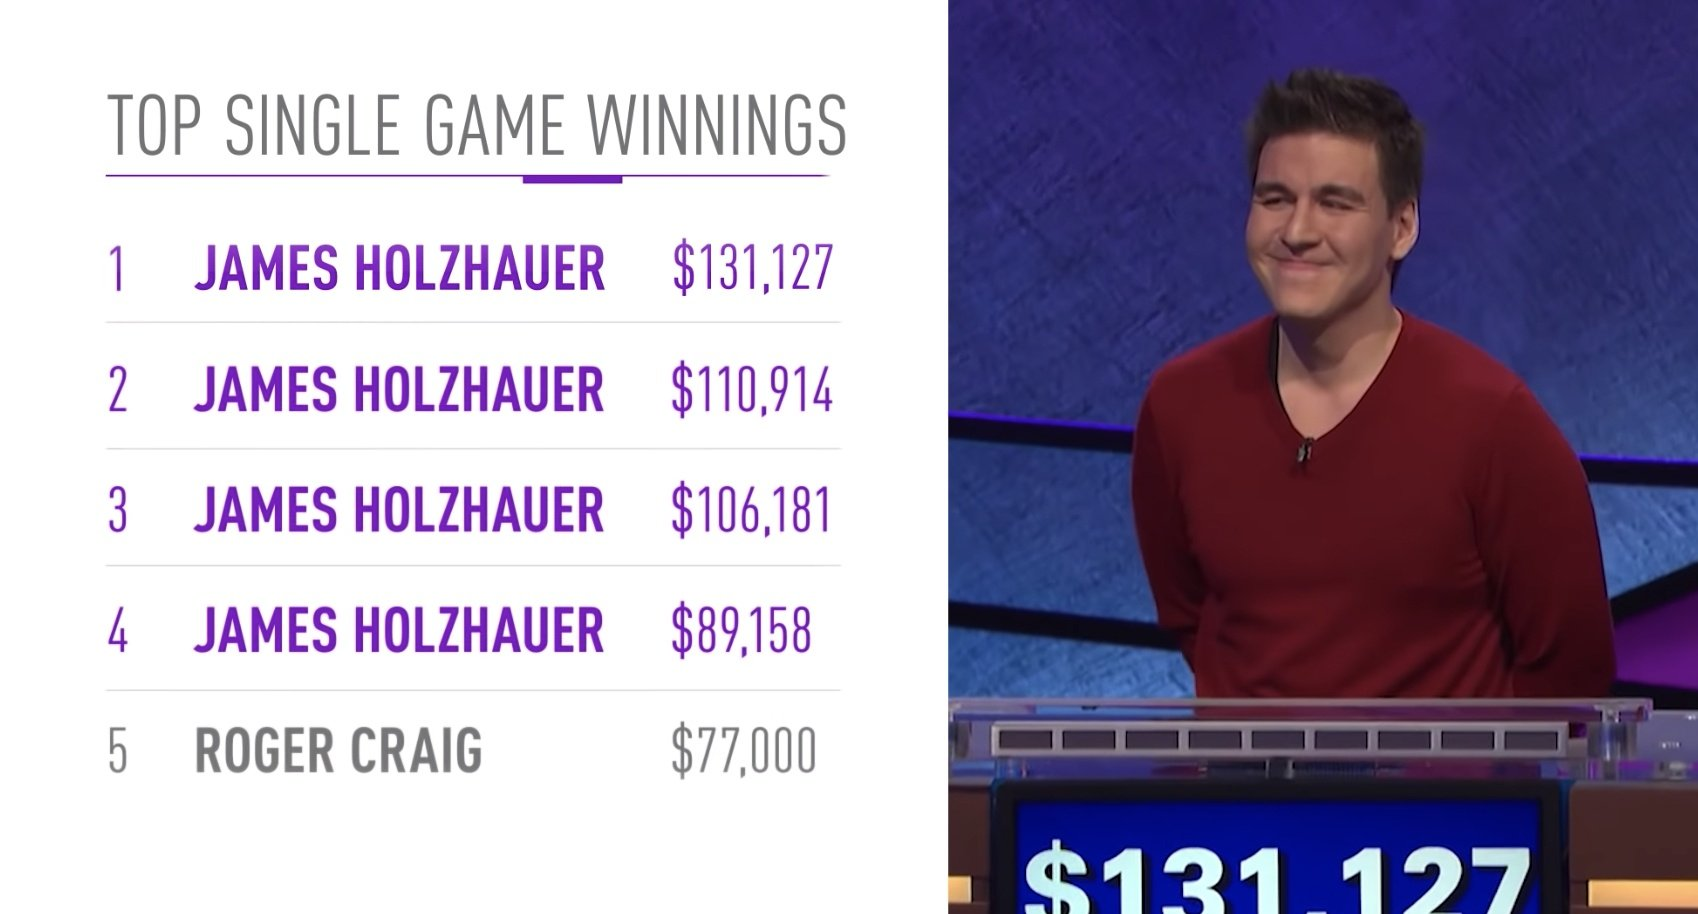 James Holzhauer Jeopardy! winner Las Vegas